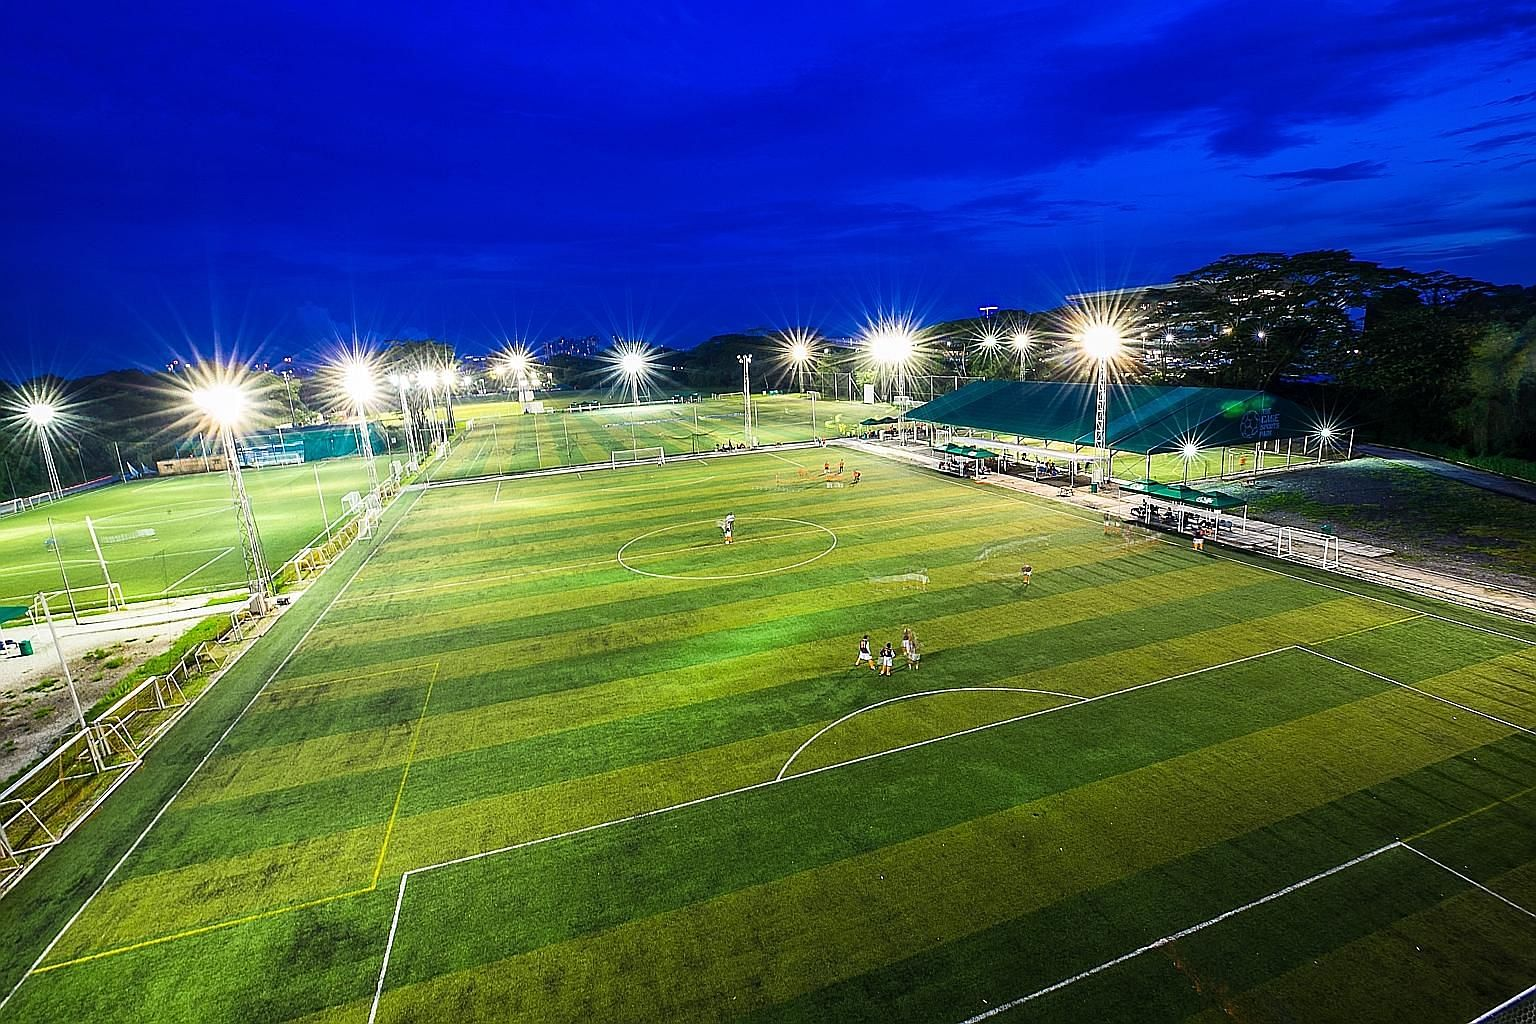 Five sports and recreation operators have teamed up to try to extend the lease of Turf City in Bukit Timah, the former home of the Singapore Turf Club. Turf City - home to a mall and car dealerships - hosts some 30 types of sports and recreational ac